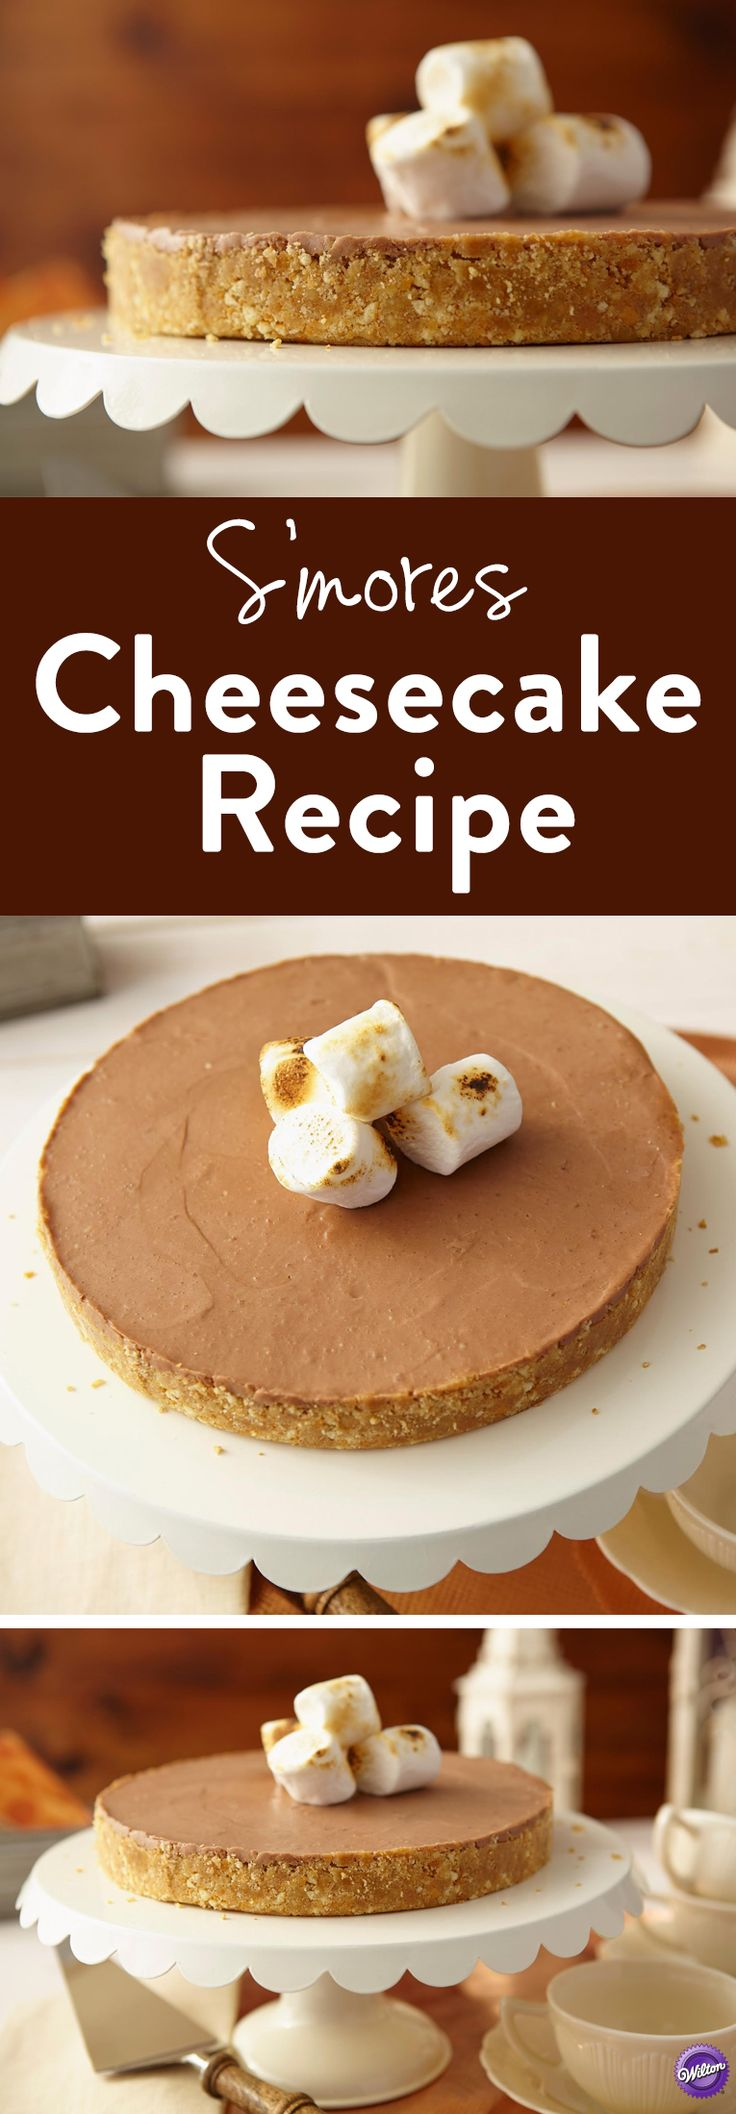 S'mores Cheesecake Recipe - This rich creamy smores cheesecake will be a sure hit at your next gathering. Garnish with chopped candy and jumbo marshmallows for the ultimate s'mores look! No campfire required!